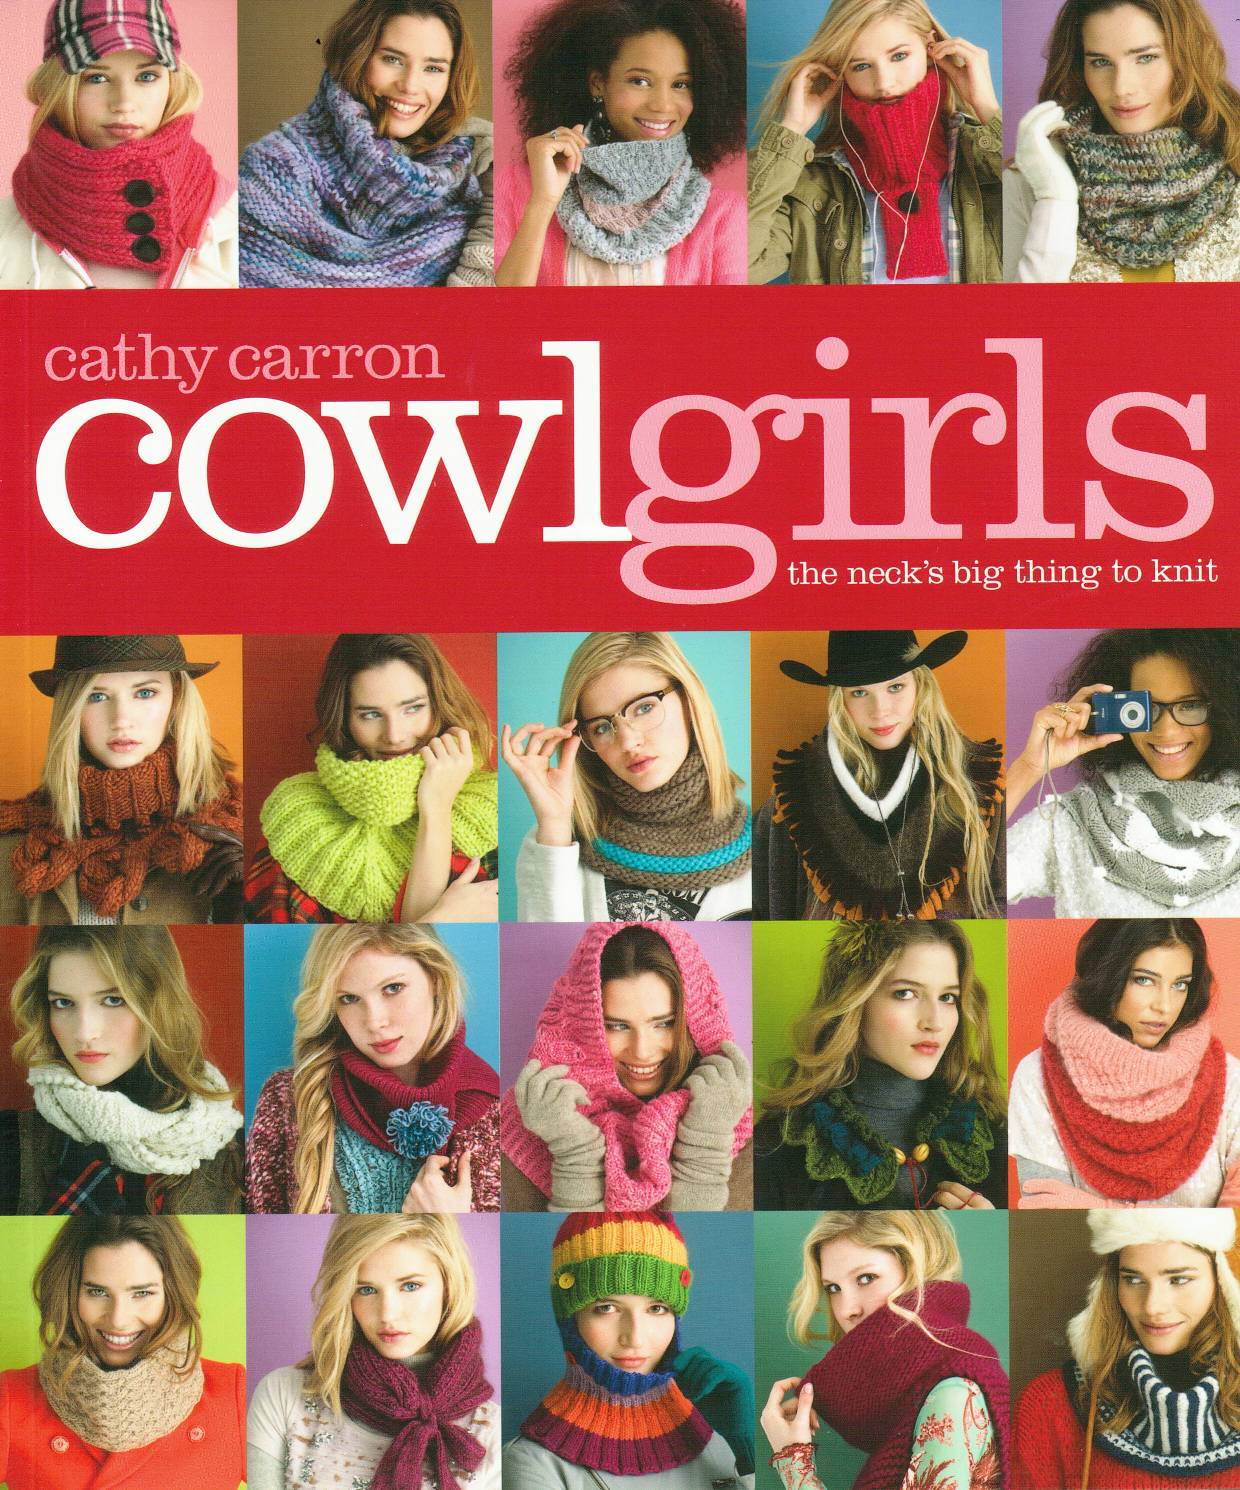 cowlgirls cover LARGE.jpg